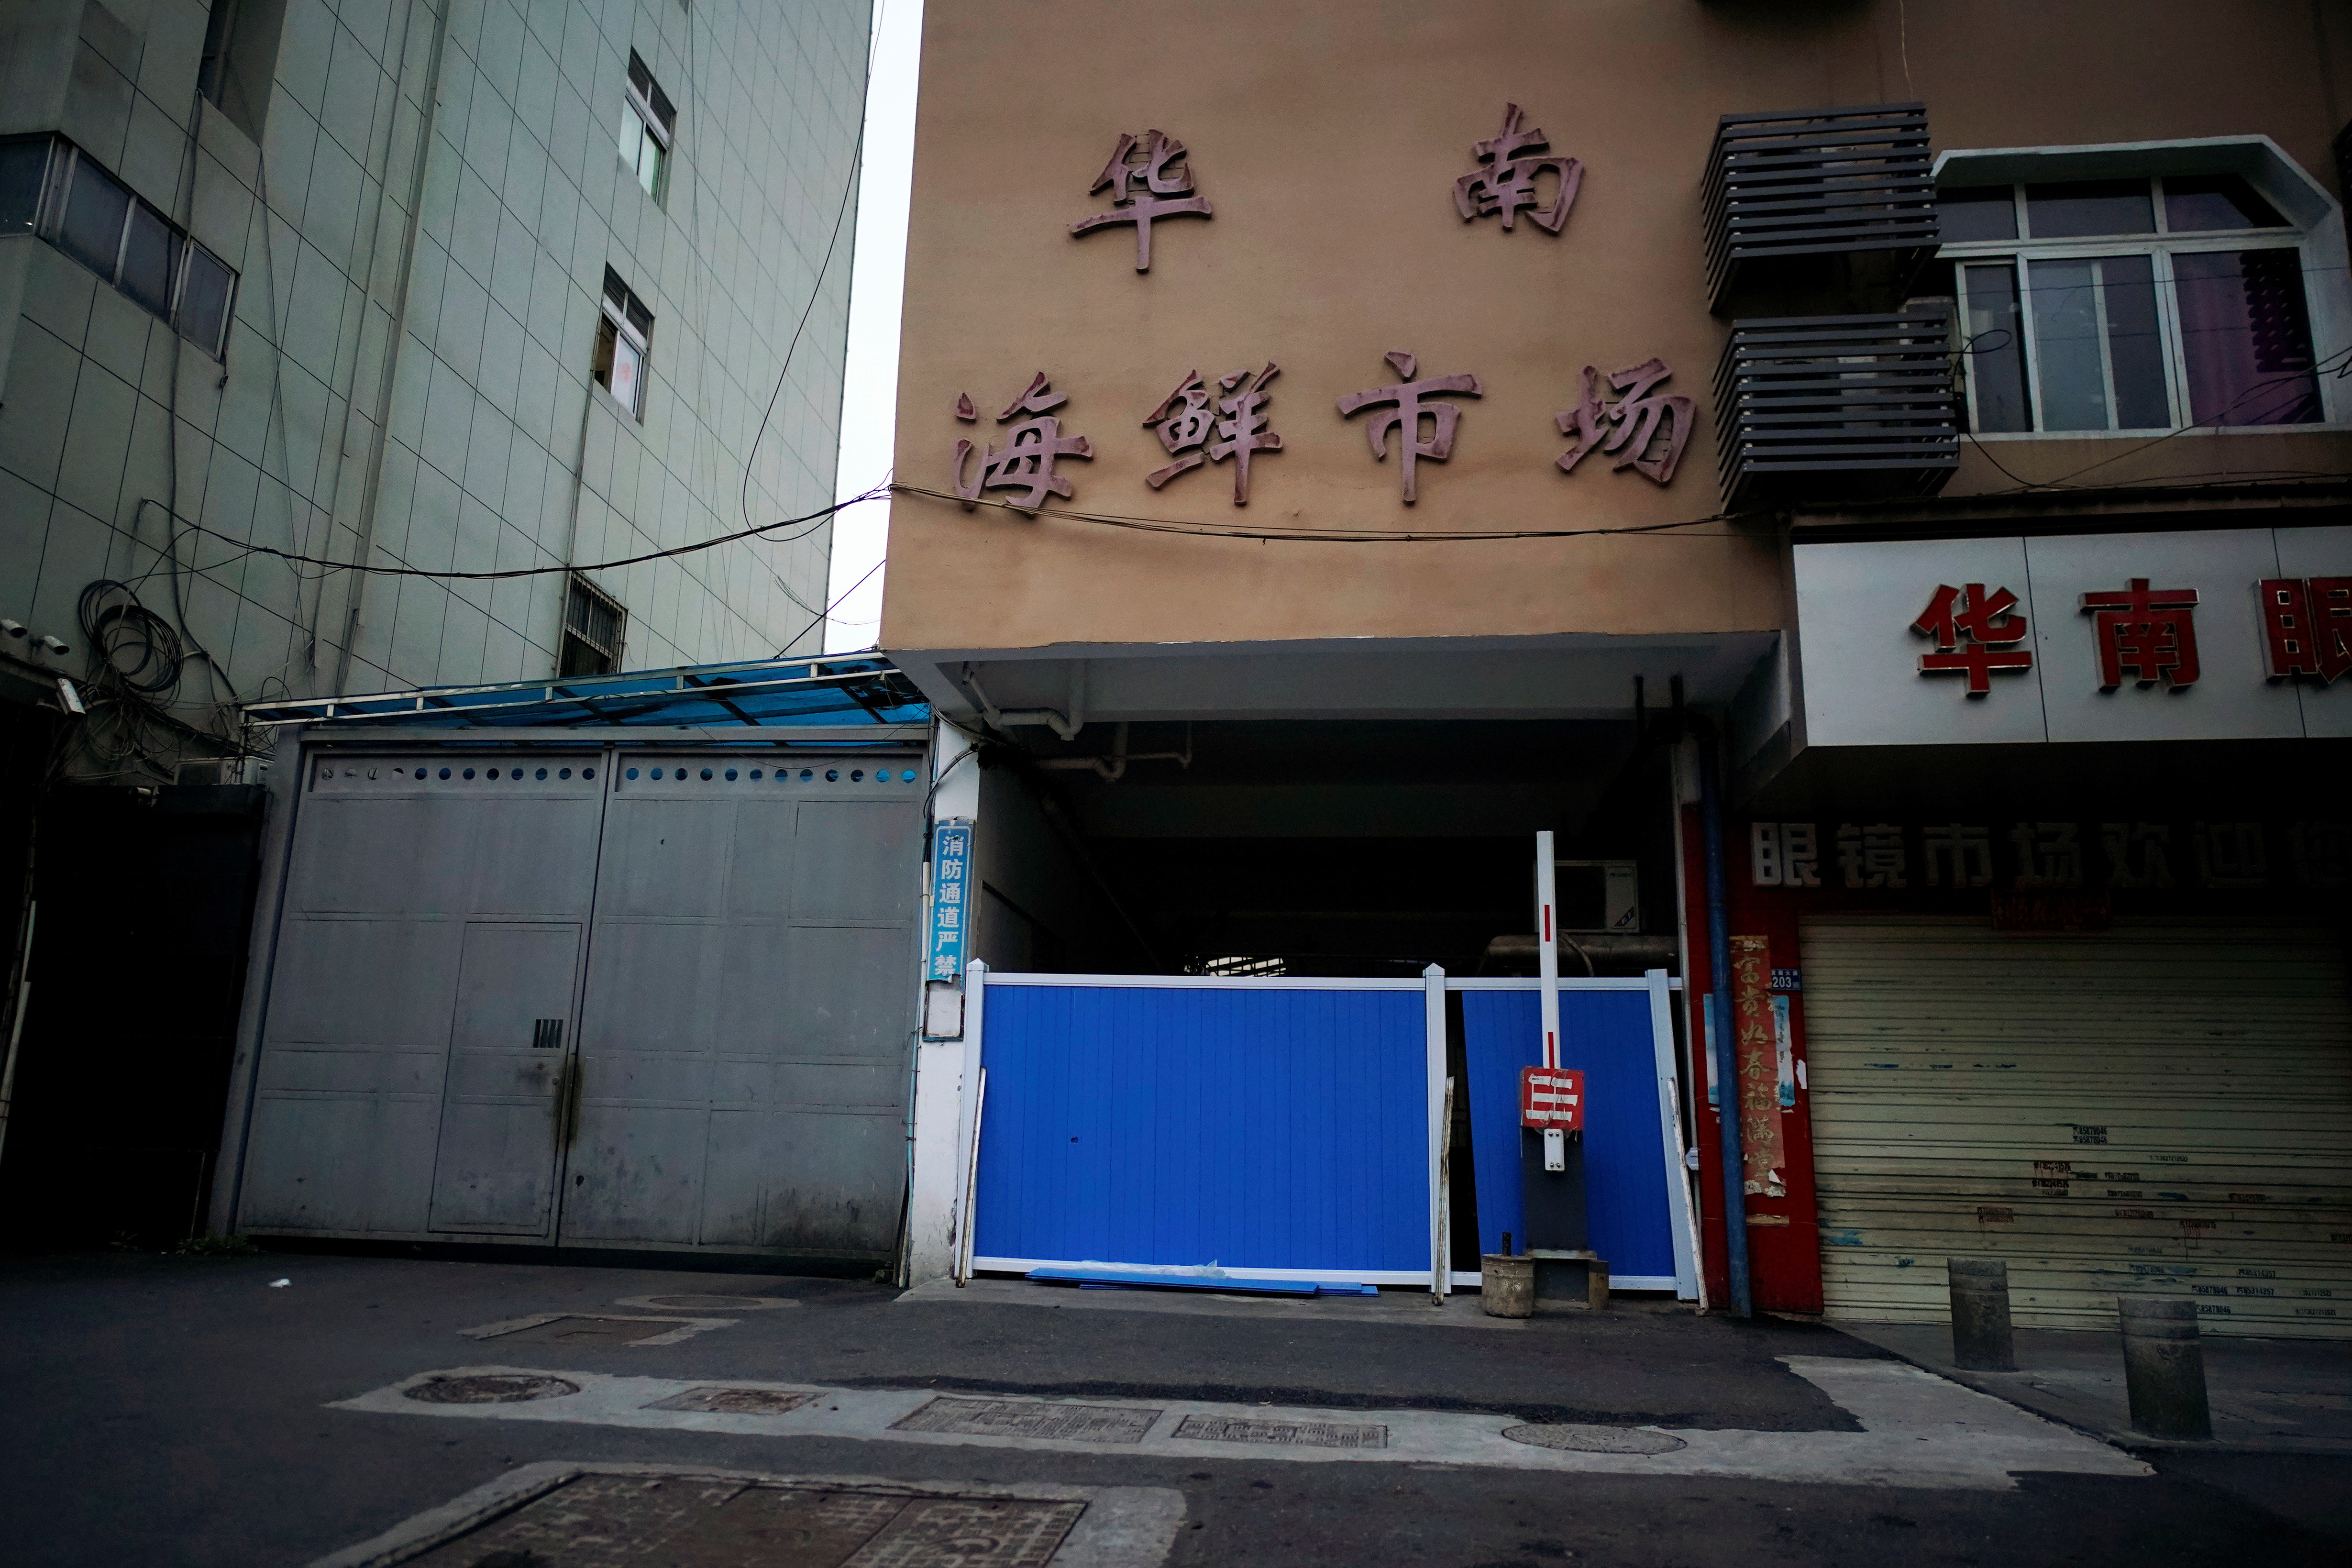 A blocked entrance to Huanan seafood market, where the coronavirus that can cause COVID-19 is believed to have first surfaced, is seen in Wuhan, Hubei province, China March 30, 2020.